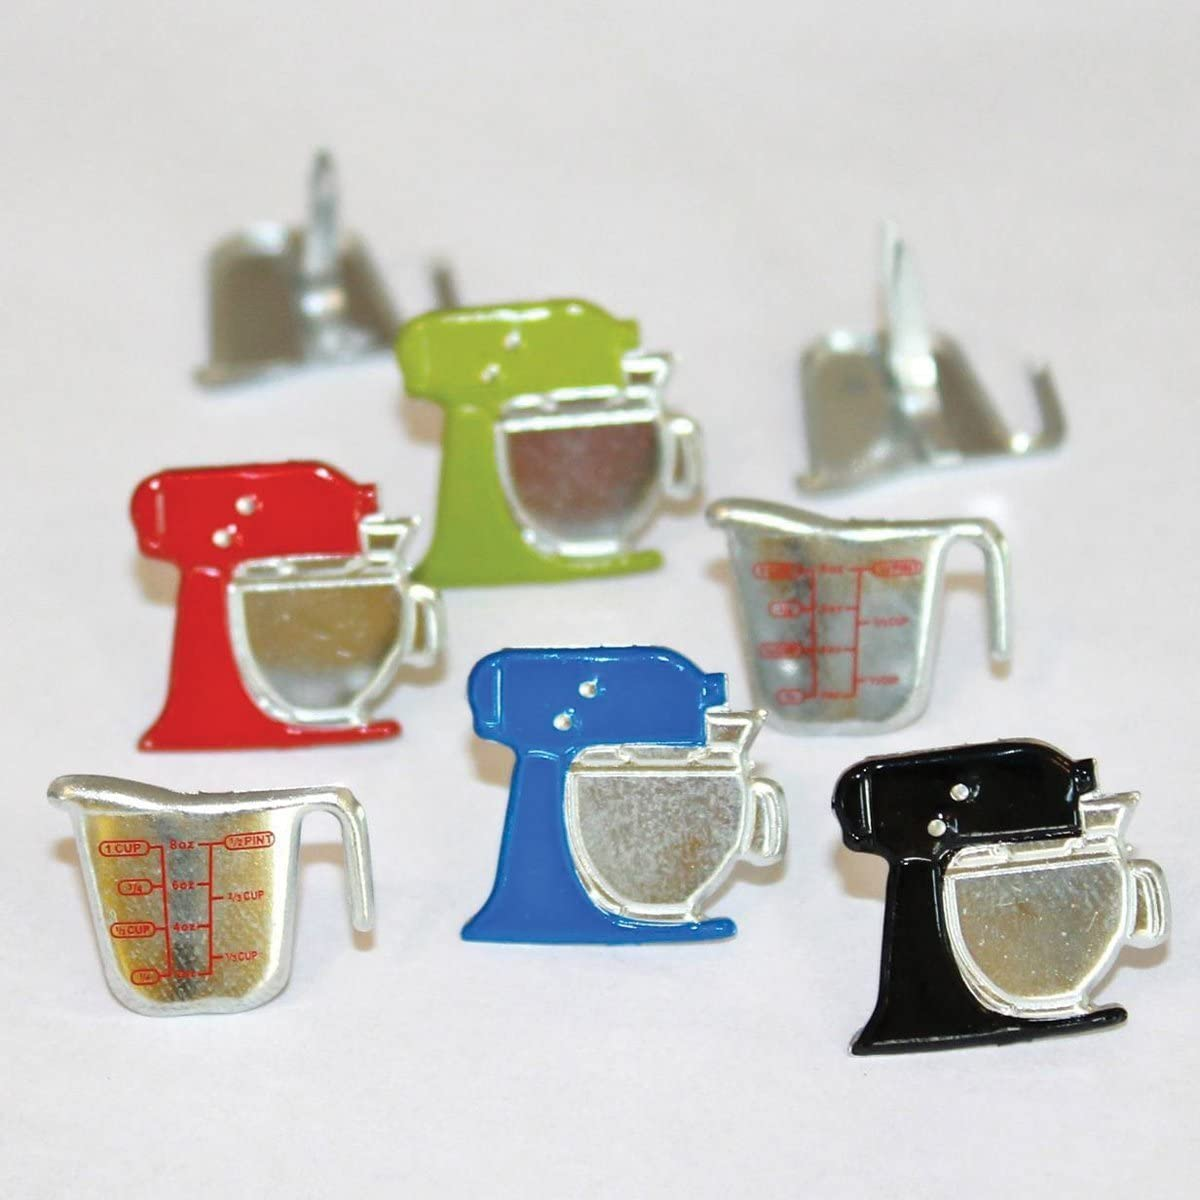 Eyelet Outlet Mixer and Cup Brads